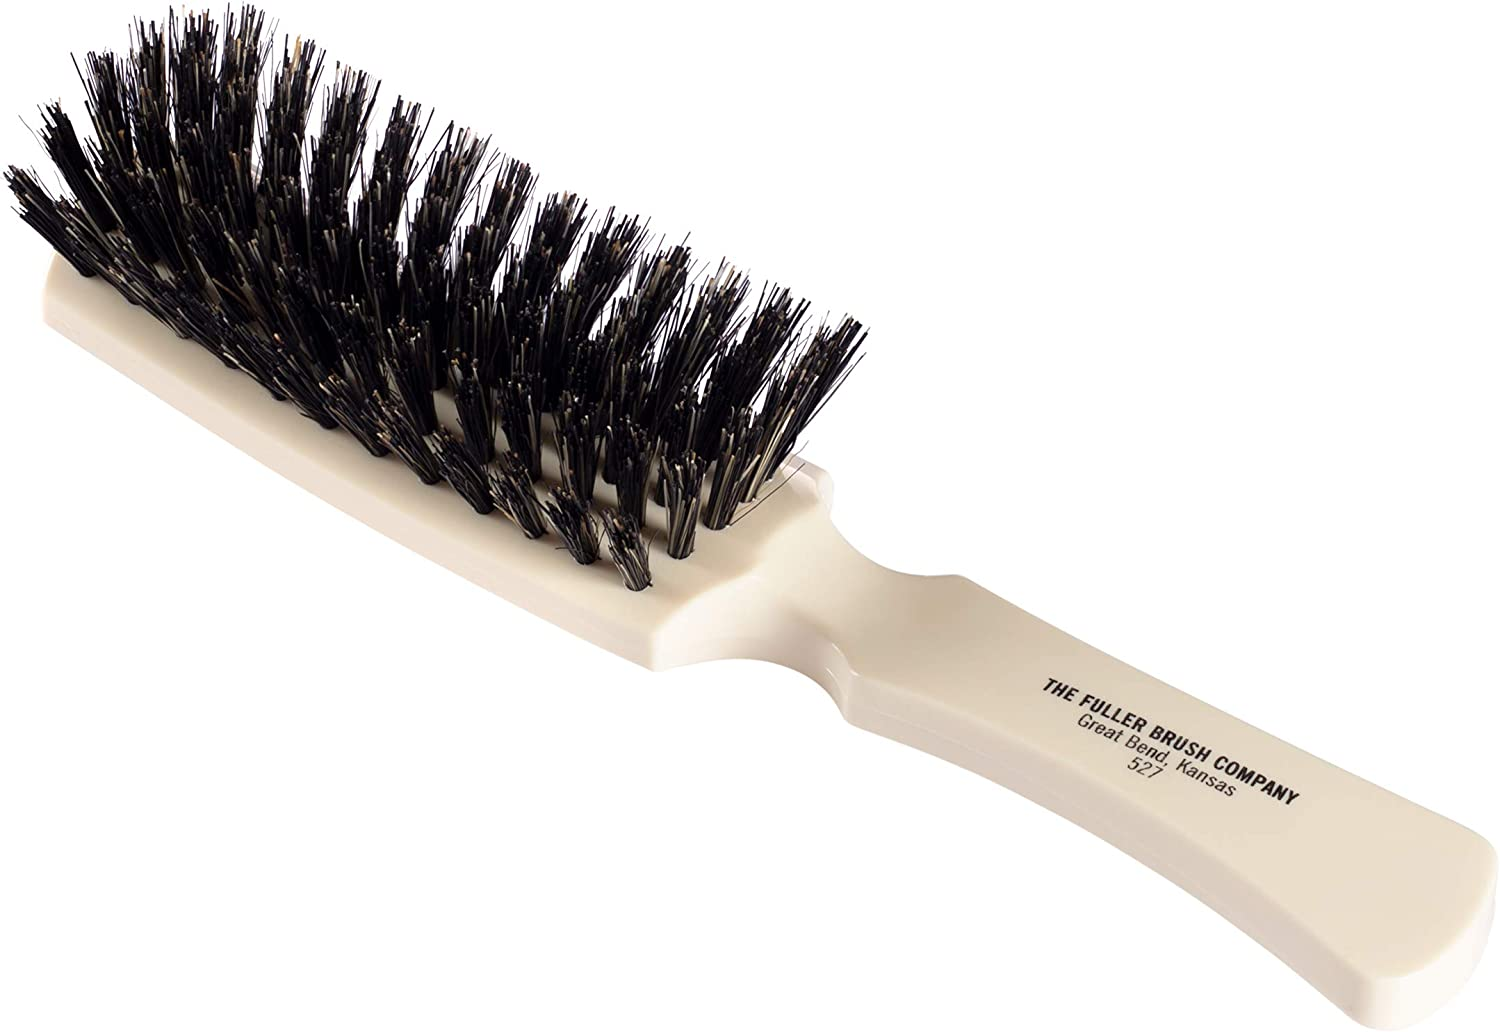 Fuller Brush Lustre Professional Hairbrush – 6 Row Styling Hair Brush & Volumizer w/ Natural Boar Bristle For Smoothing Straight, Short Fine or Damaged Hair